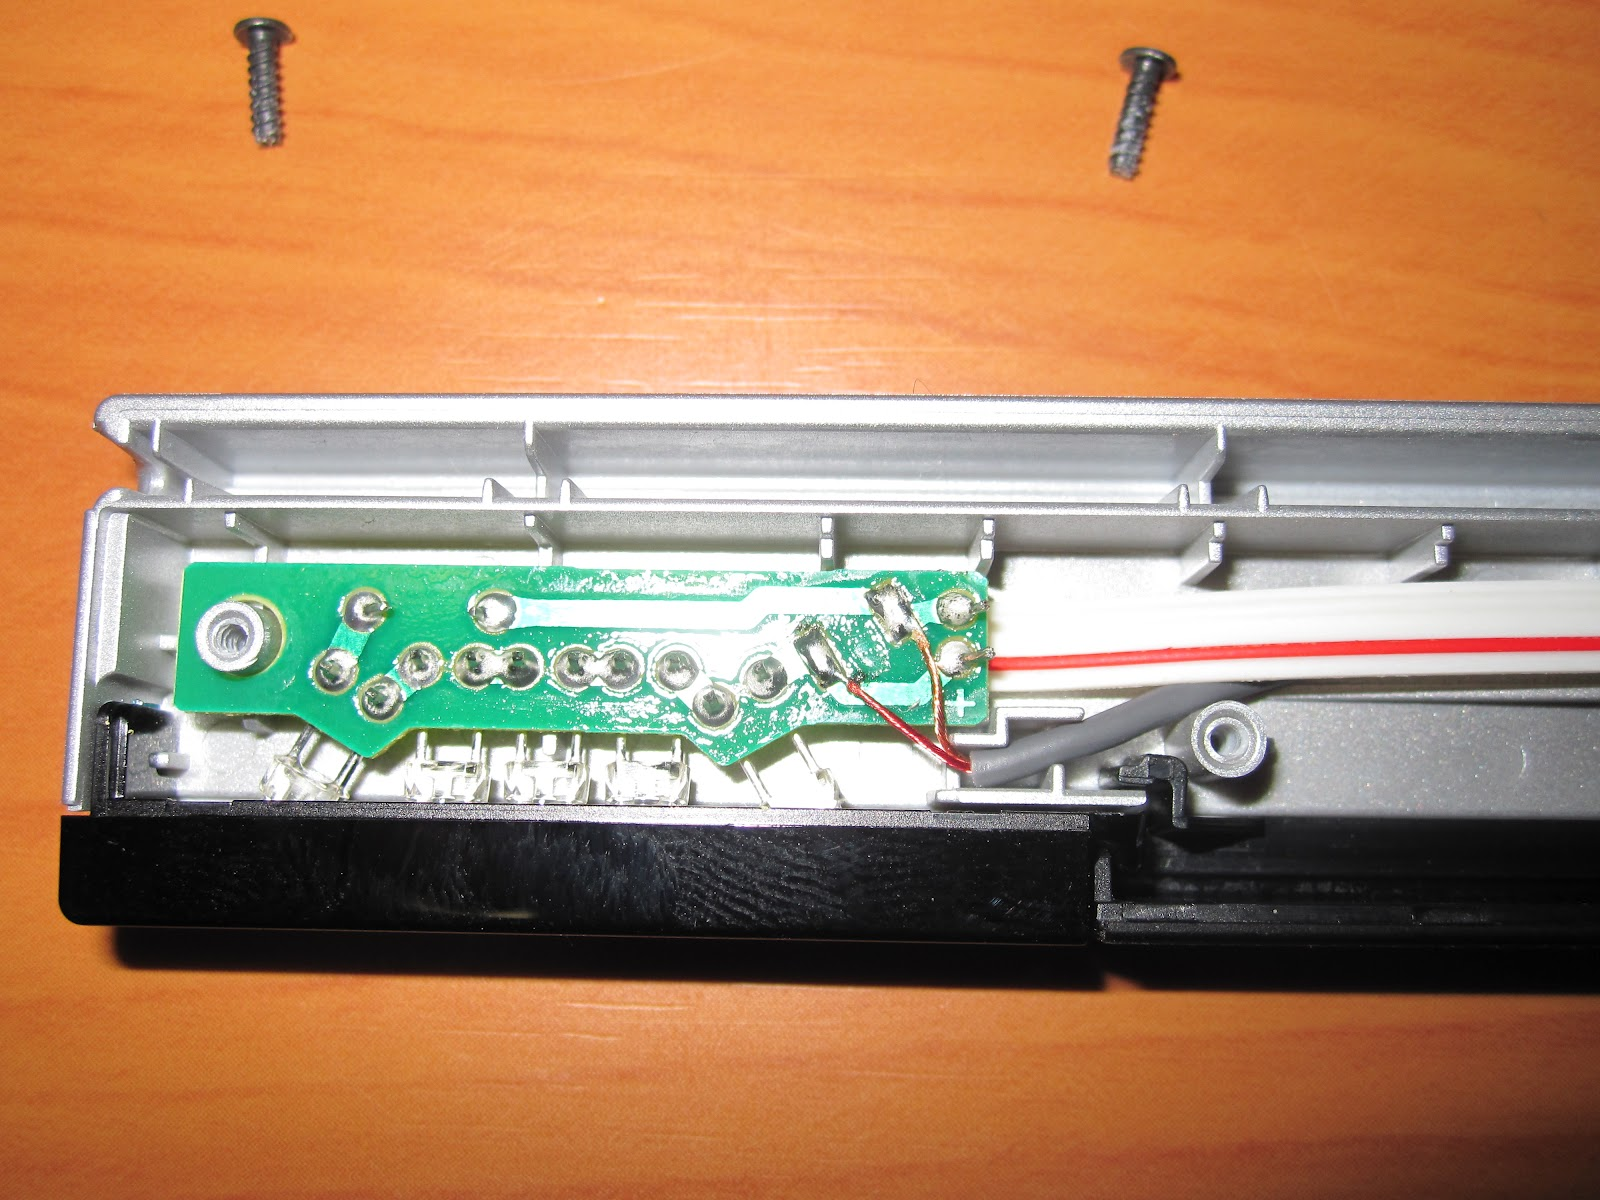 Wii Bar Sensor Schematic Great Installation Of Wiring Diagram Component Cable Repair Rh Jondontdoit Blogspot Com U Under